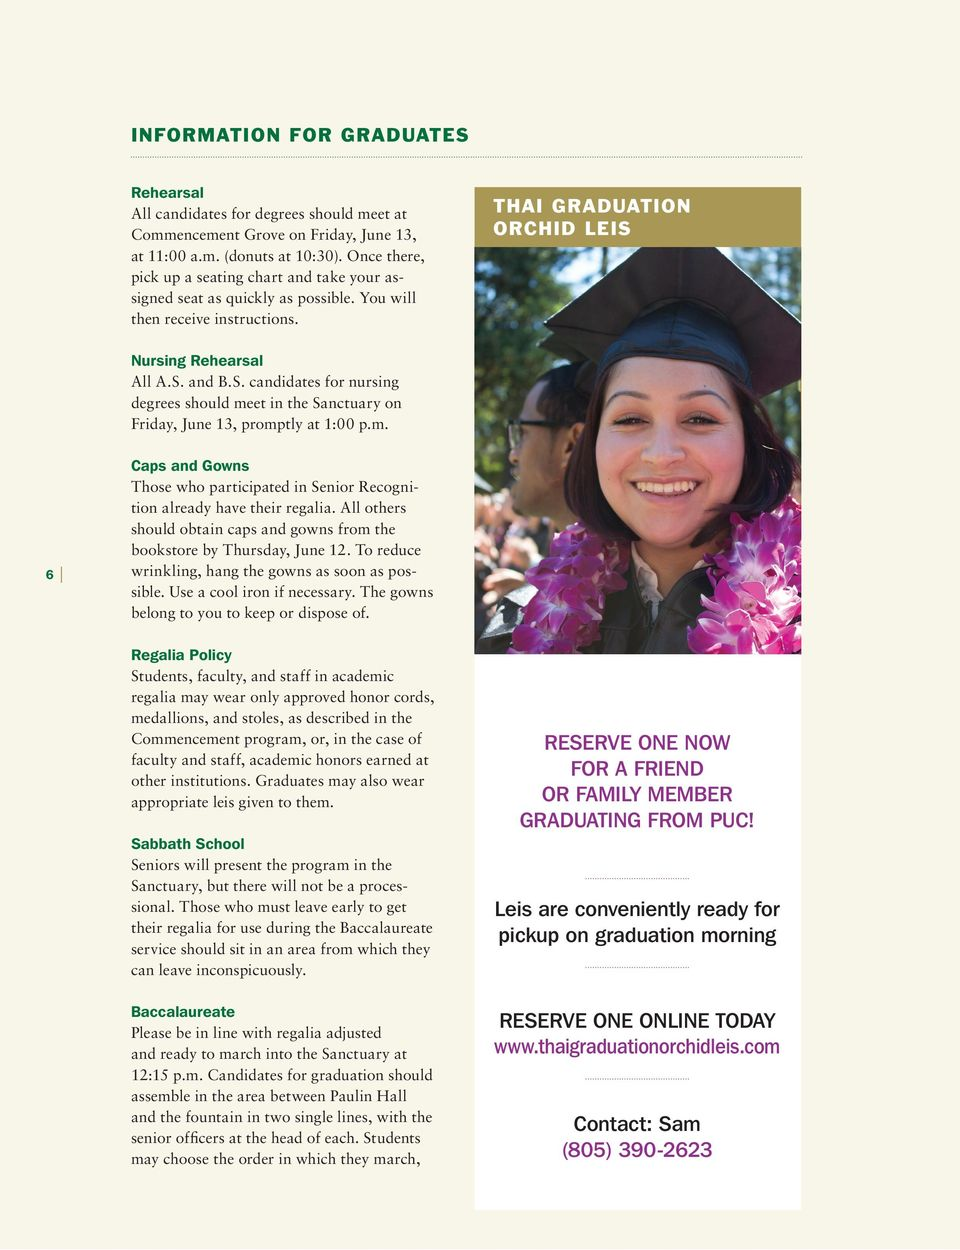 pacific union college GUIDE TO GRADUATION WEEKEND - PDF